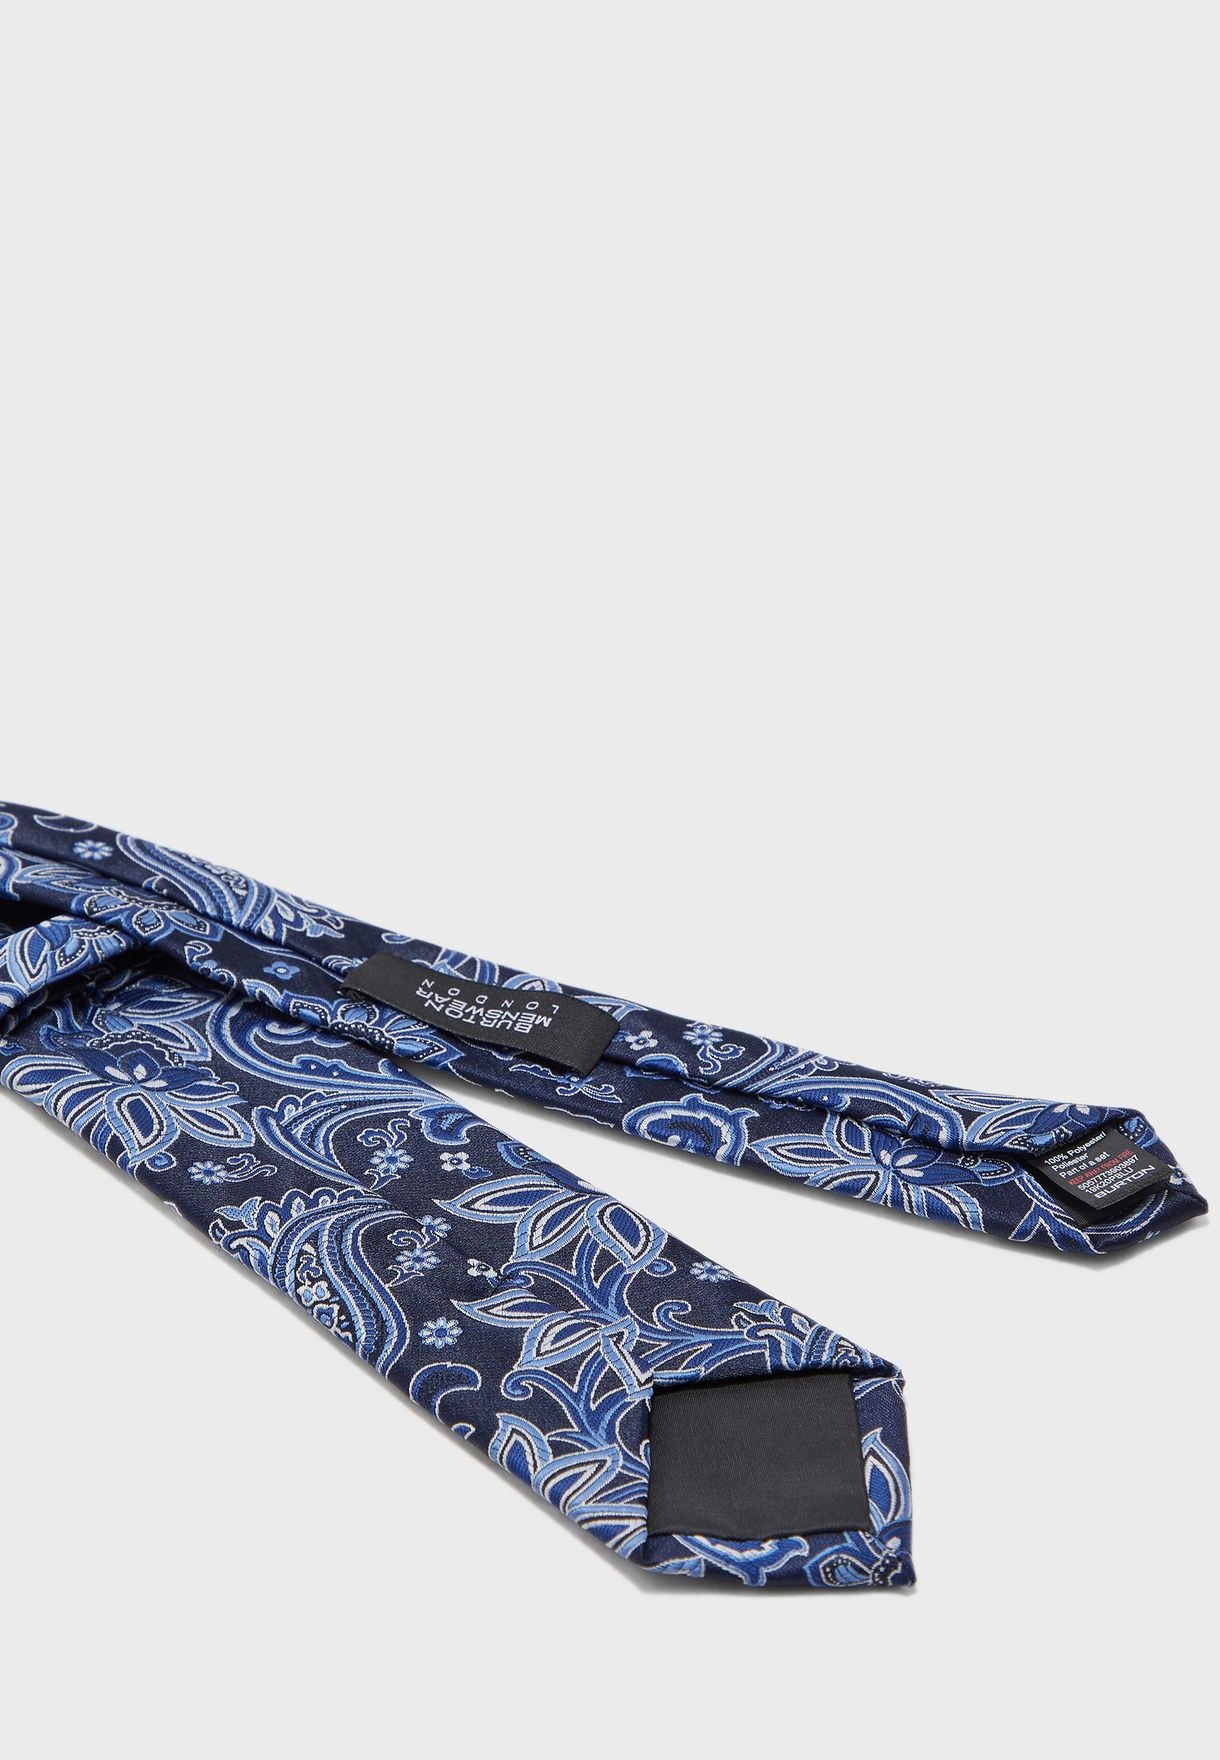 Paisley Print Tie With Pocket Square